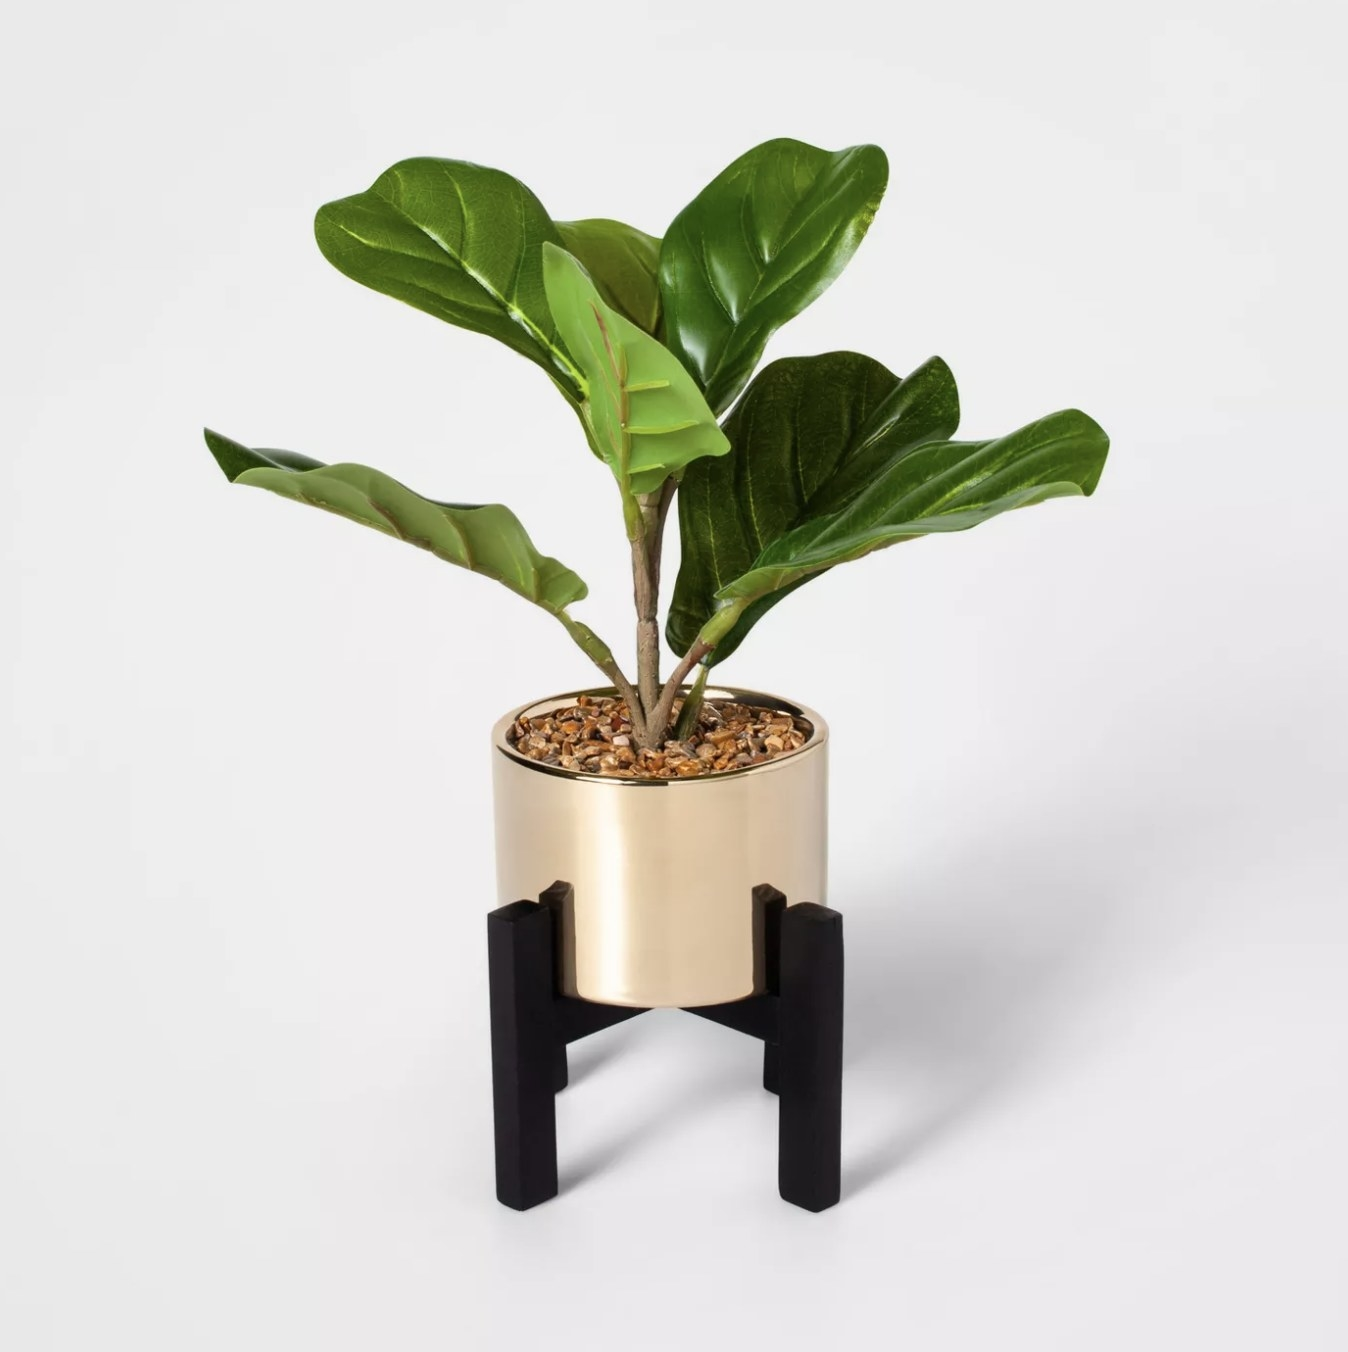 The fiddle leaf plant